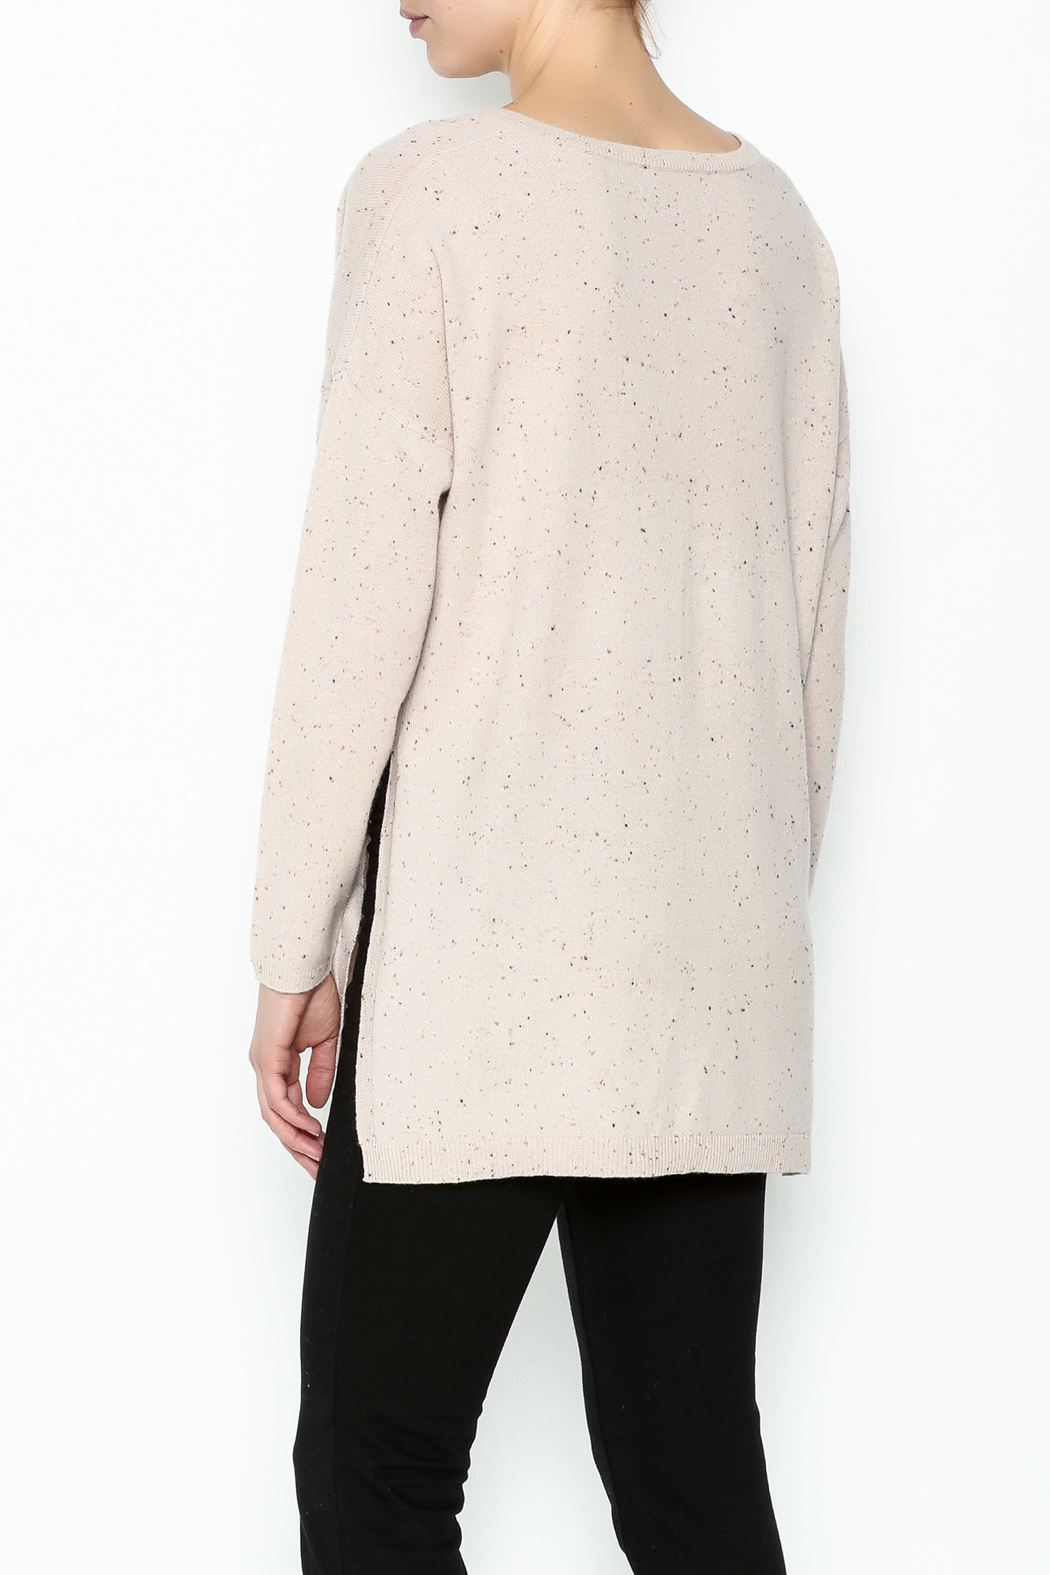 subtle luxury Open Rib Sweater - Back Cropped Image